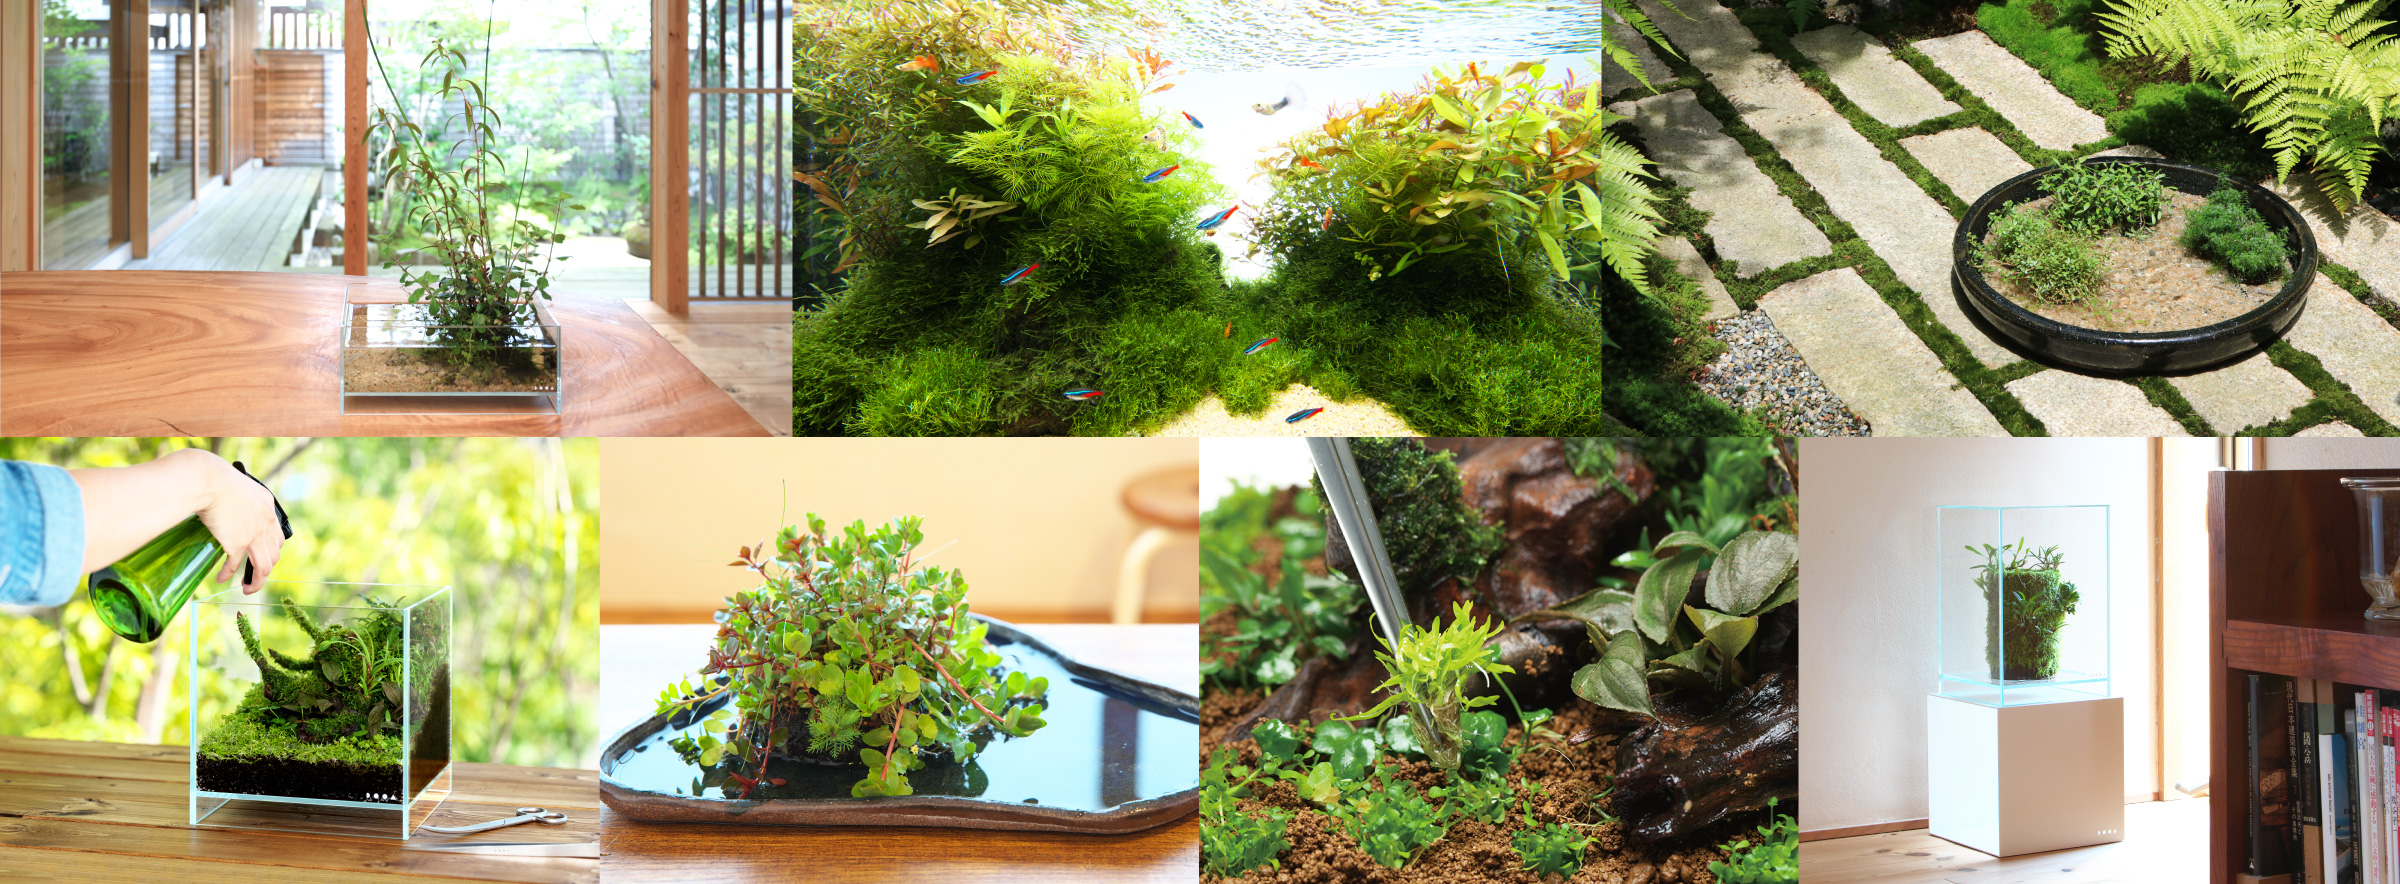 HOME AQUARIUM 'Enjoy plants with Neo Glass Air'